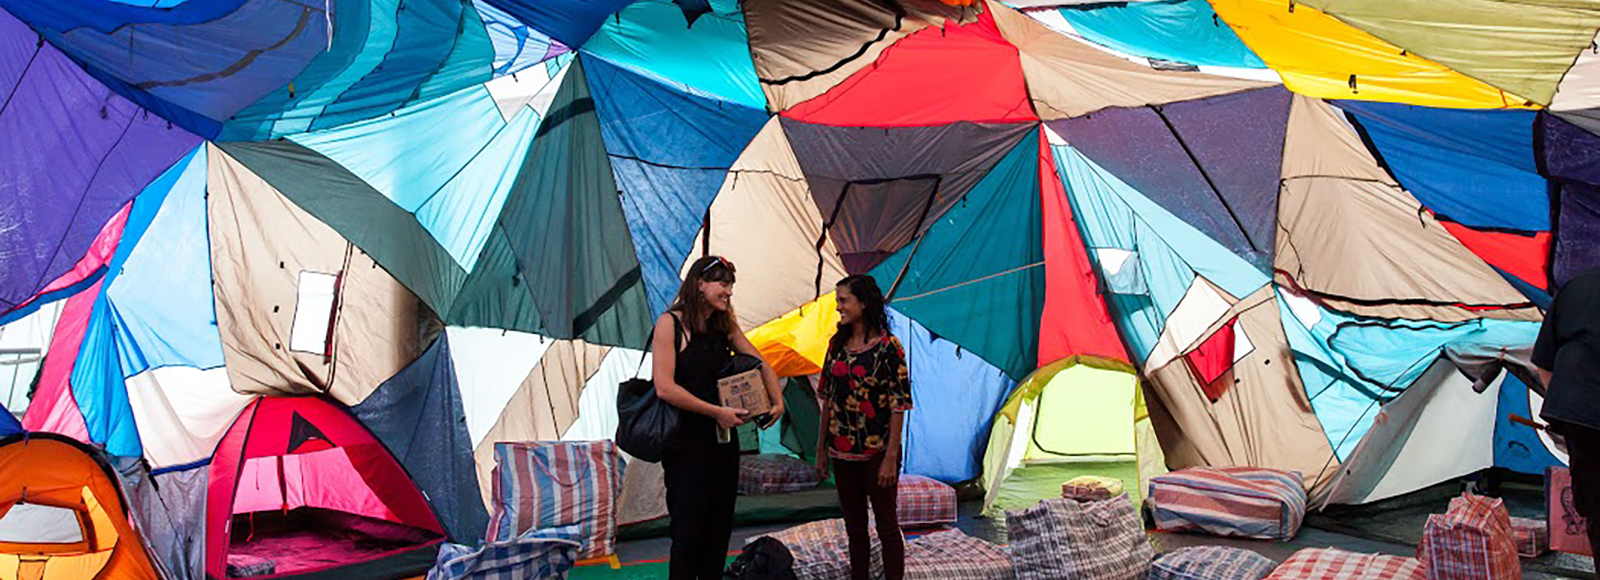 Keg de Souza, 'We Built This City', 2016, tents, tarps, hessian sacks, piping, plaid laundry bags, various found & recycled materials, dialogue, tour program, dimensions variable. Installation view of 20th Biennale of Sydney (2016). Courtesy the artist